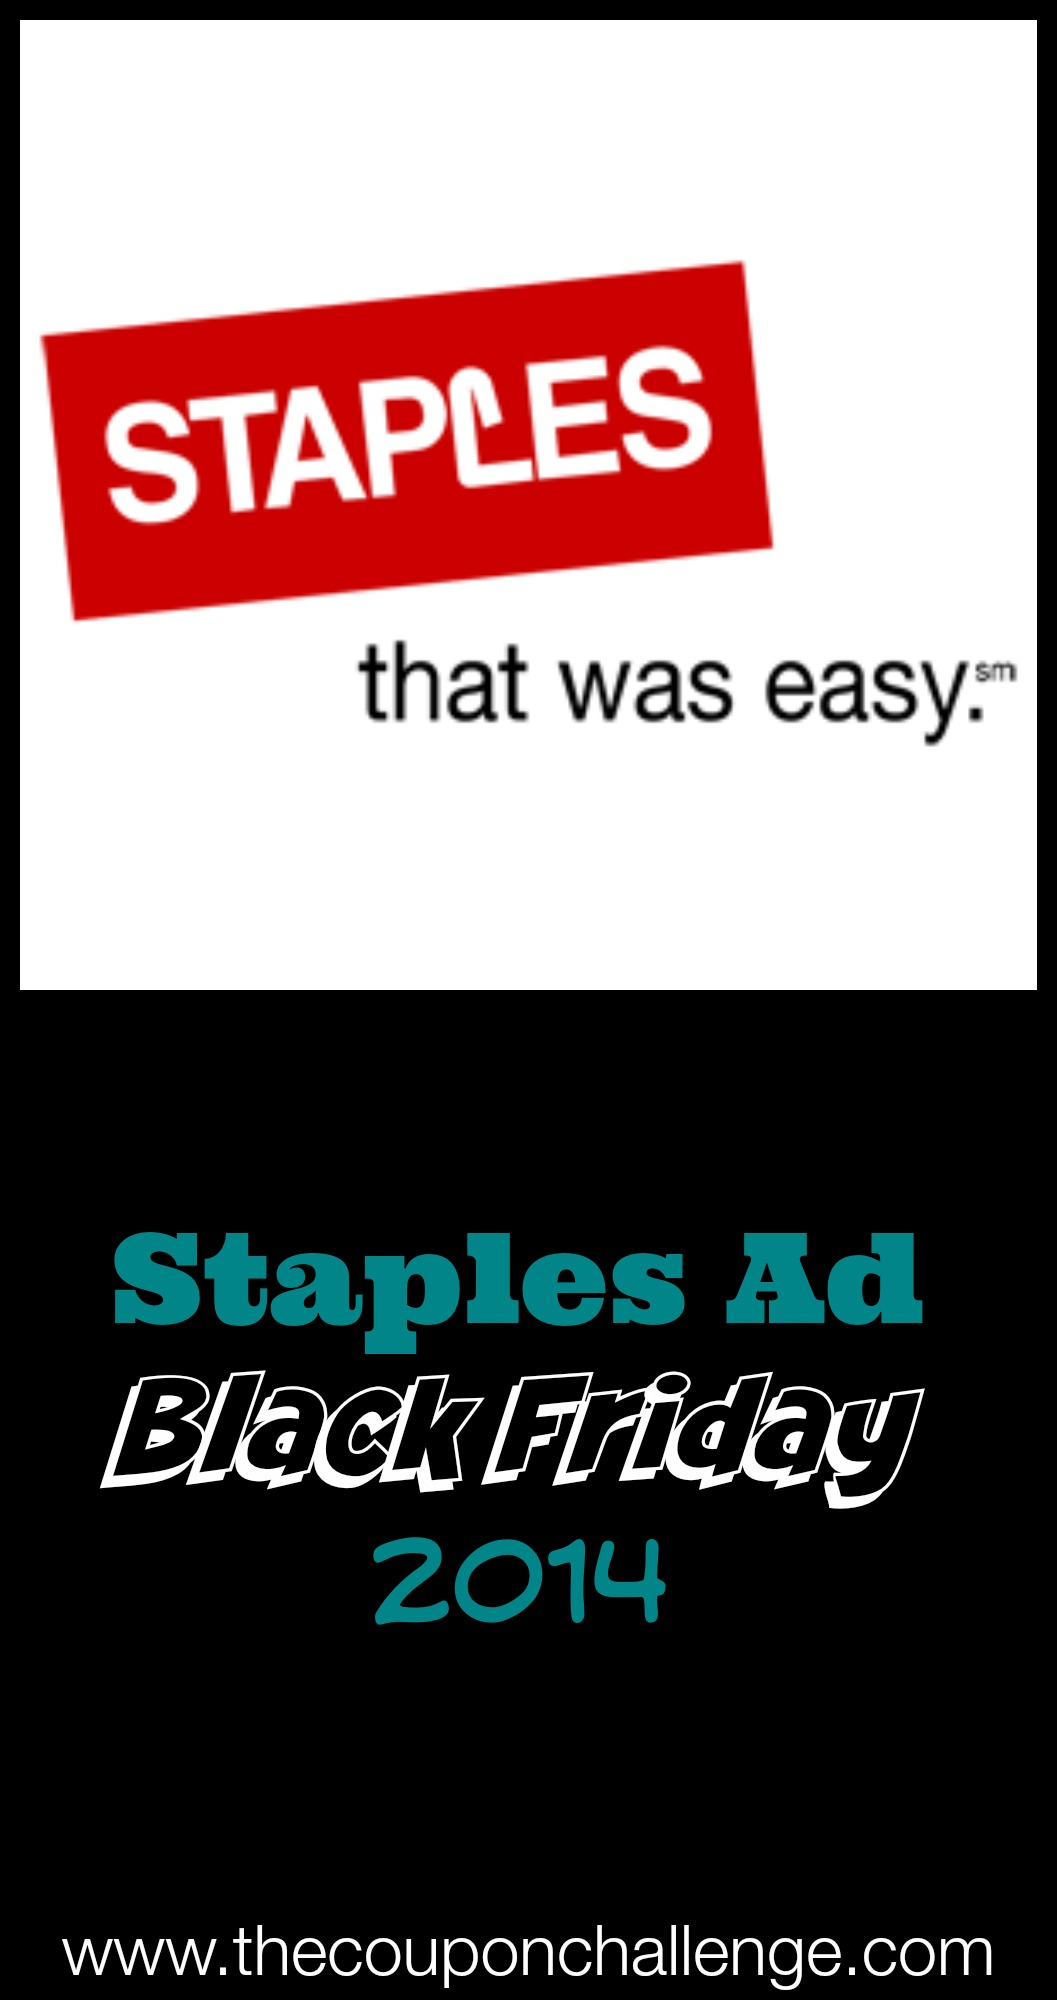 2014 Staples Black Friday Ad